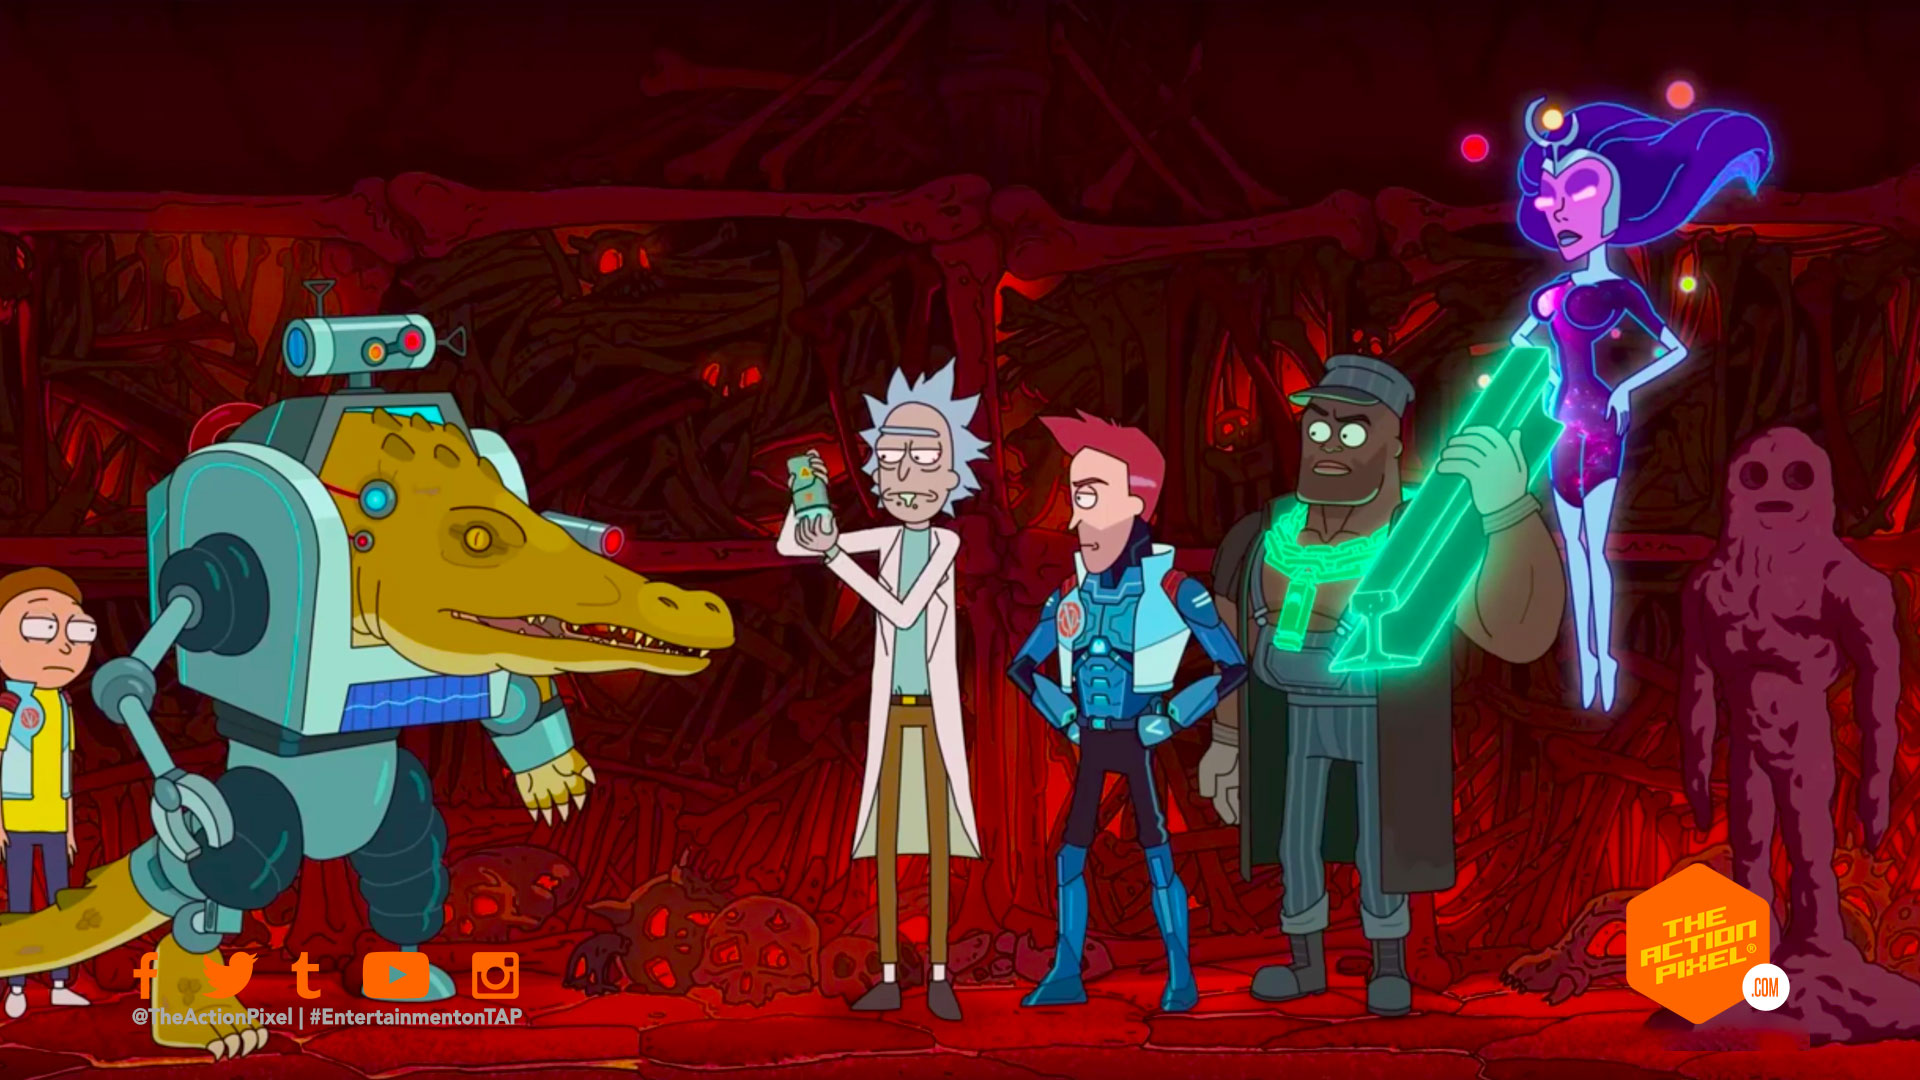 rick and morty, rick & morty, vindicators 3: return of the worldender, rick and morty episodes, rick and morty spinoff, the vindicators, entertainment on tap, the action pixel, featured, adult swim, rick sanchez, morty, entertainment news, featured,